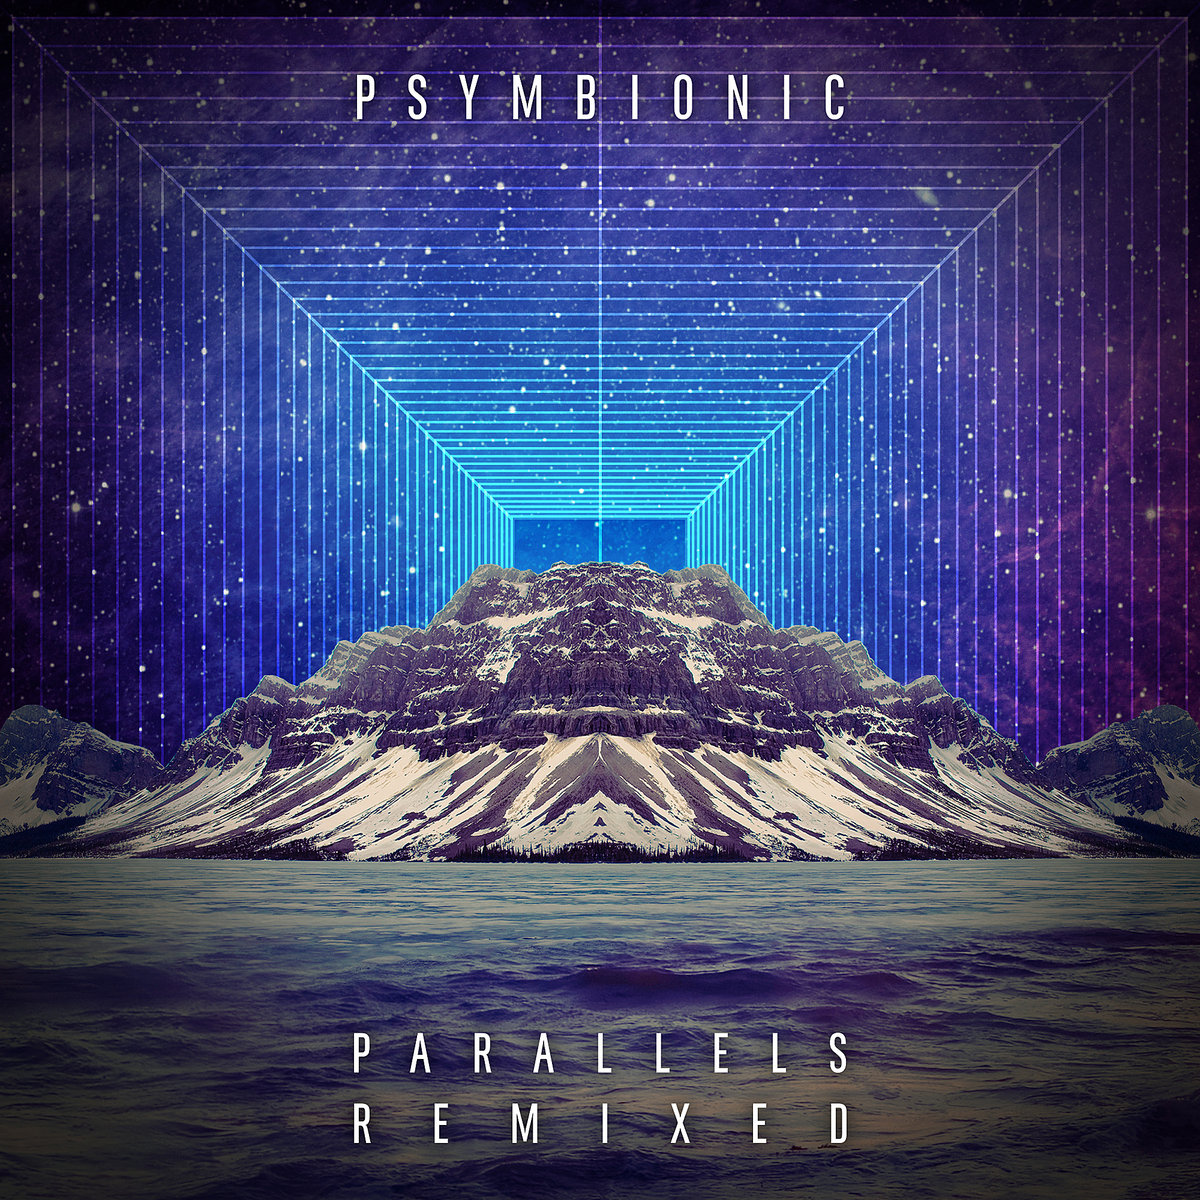 Psymbionic feat. Jay Fresh - Continuum (The OriGinALz Remix) @ 'Parallels Remixed' album (Austin)